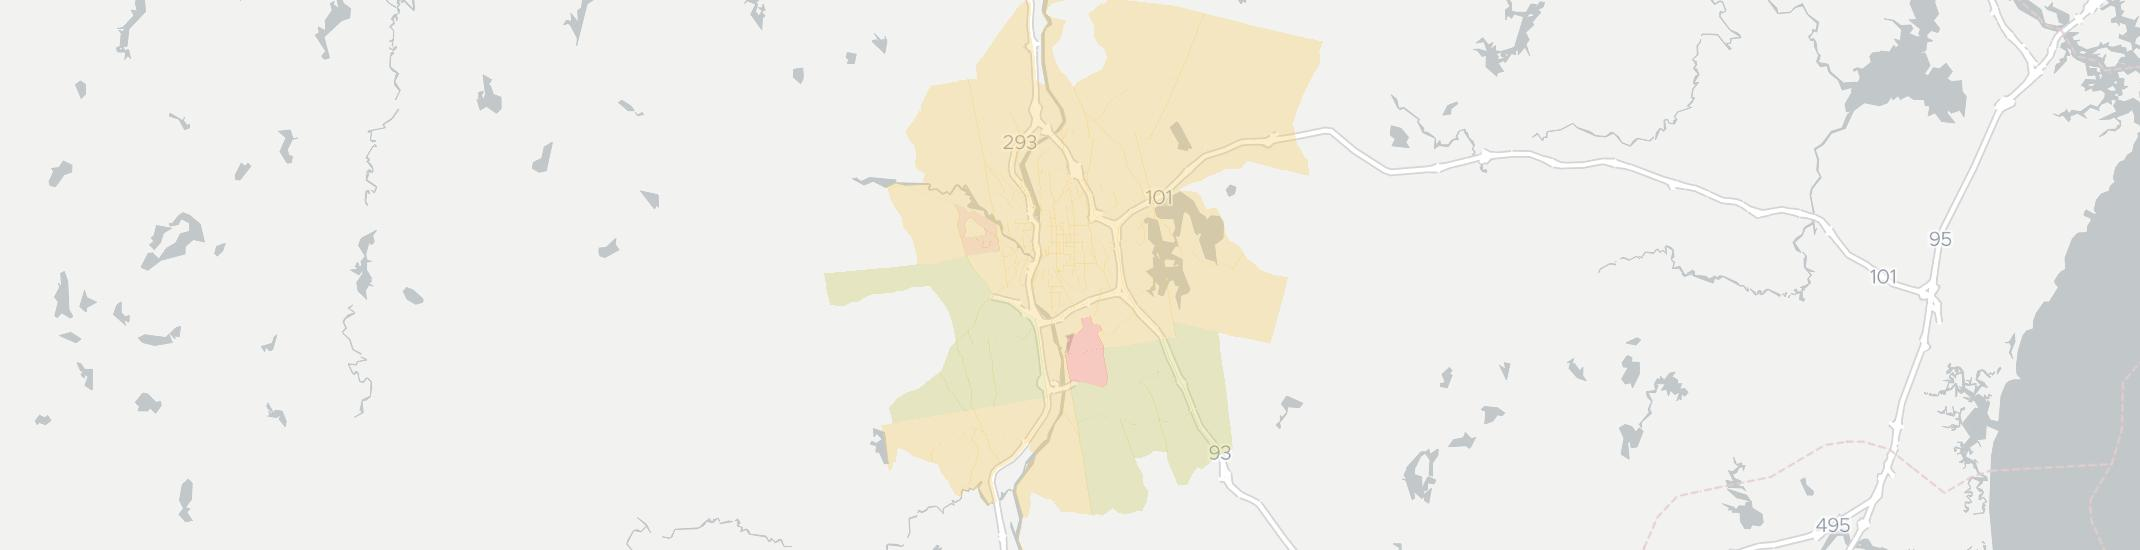 The 5 Best Manchester, NH Internet Service Providers (Oct 2019) Manchester Nh Zip Code Map on manchester nh 1950s, manchester london map, volpe center map, manchester on world map, manchester area map, manchester mo zip code map, manchester nh restaurants, manchester new york map, manchester ga map, manchester nh shopping, dubuque iowa zip codes map, manchester nh weather, new college of florida campus map, manchester nh city streets, manchester nh hotels, manchester nh city data, manchester new hampshire, nh road map, manchester uk map, manchester zip codes by street,